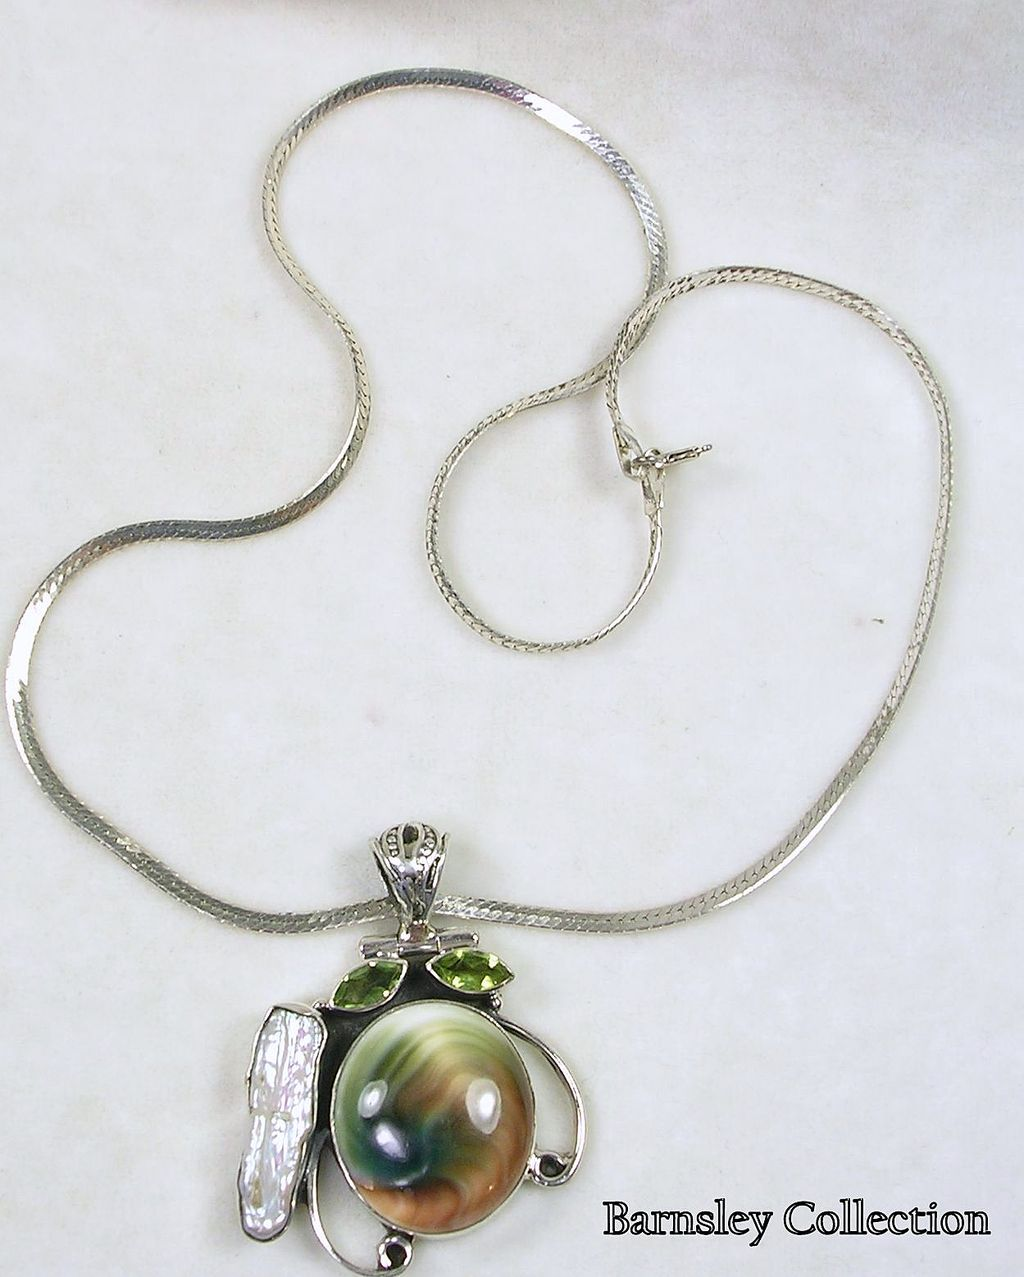 Sterling Silver Pendant Necklace with Peridot, Pearl, and Sea Shell with a Sterling Silver Chain